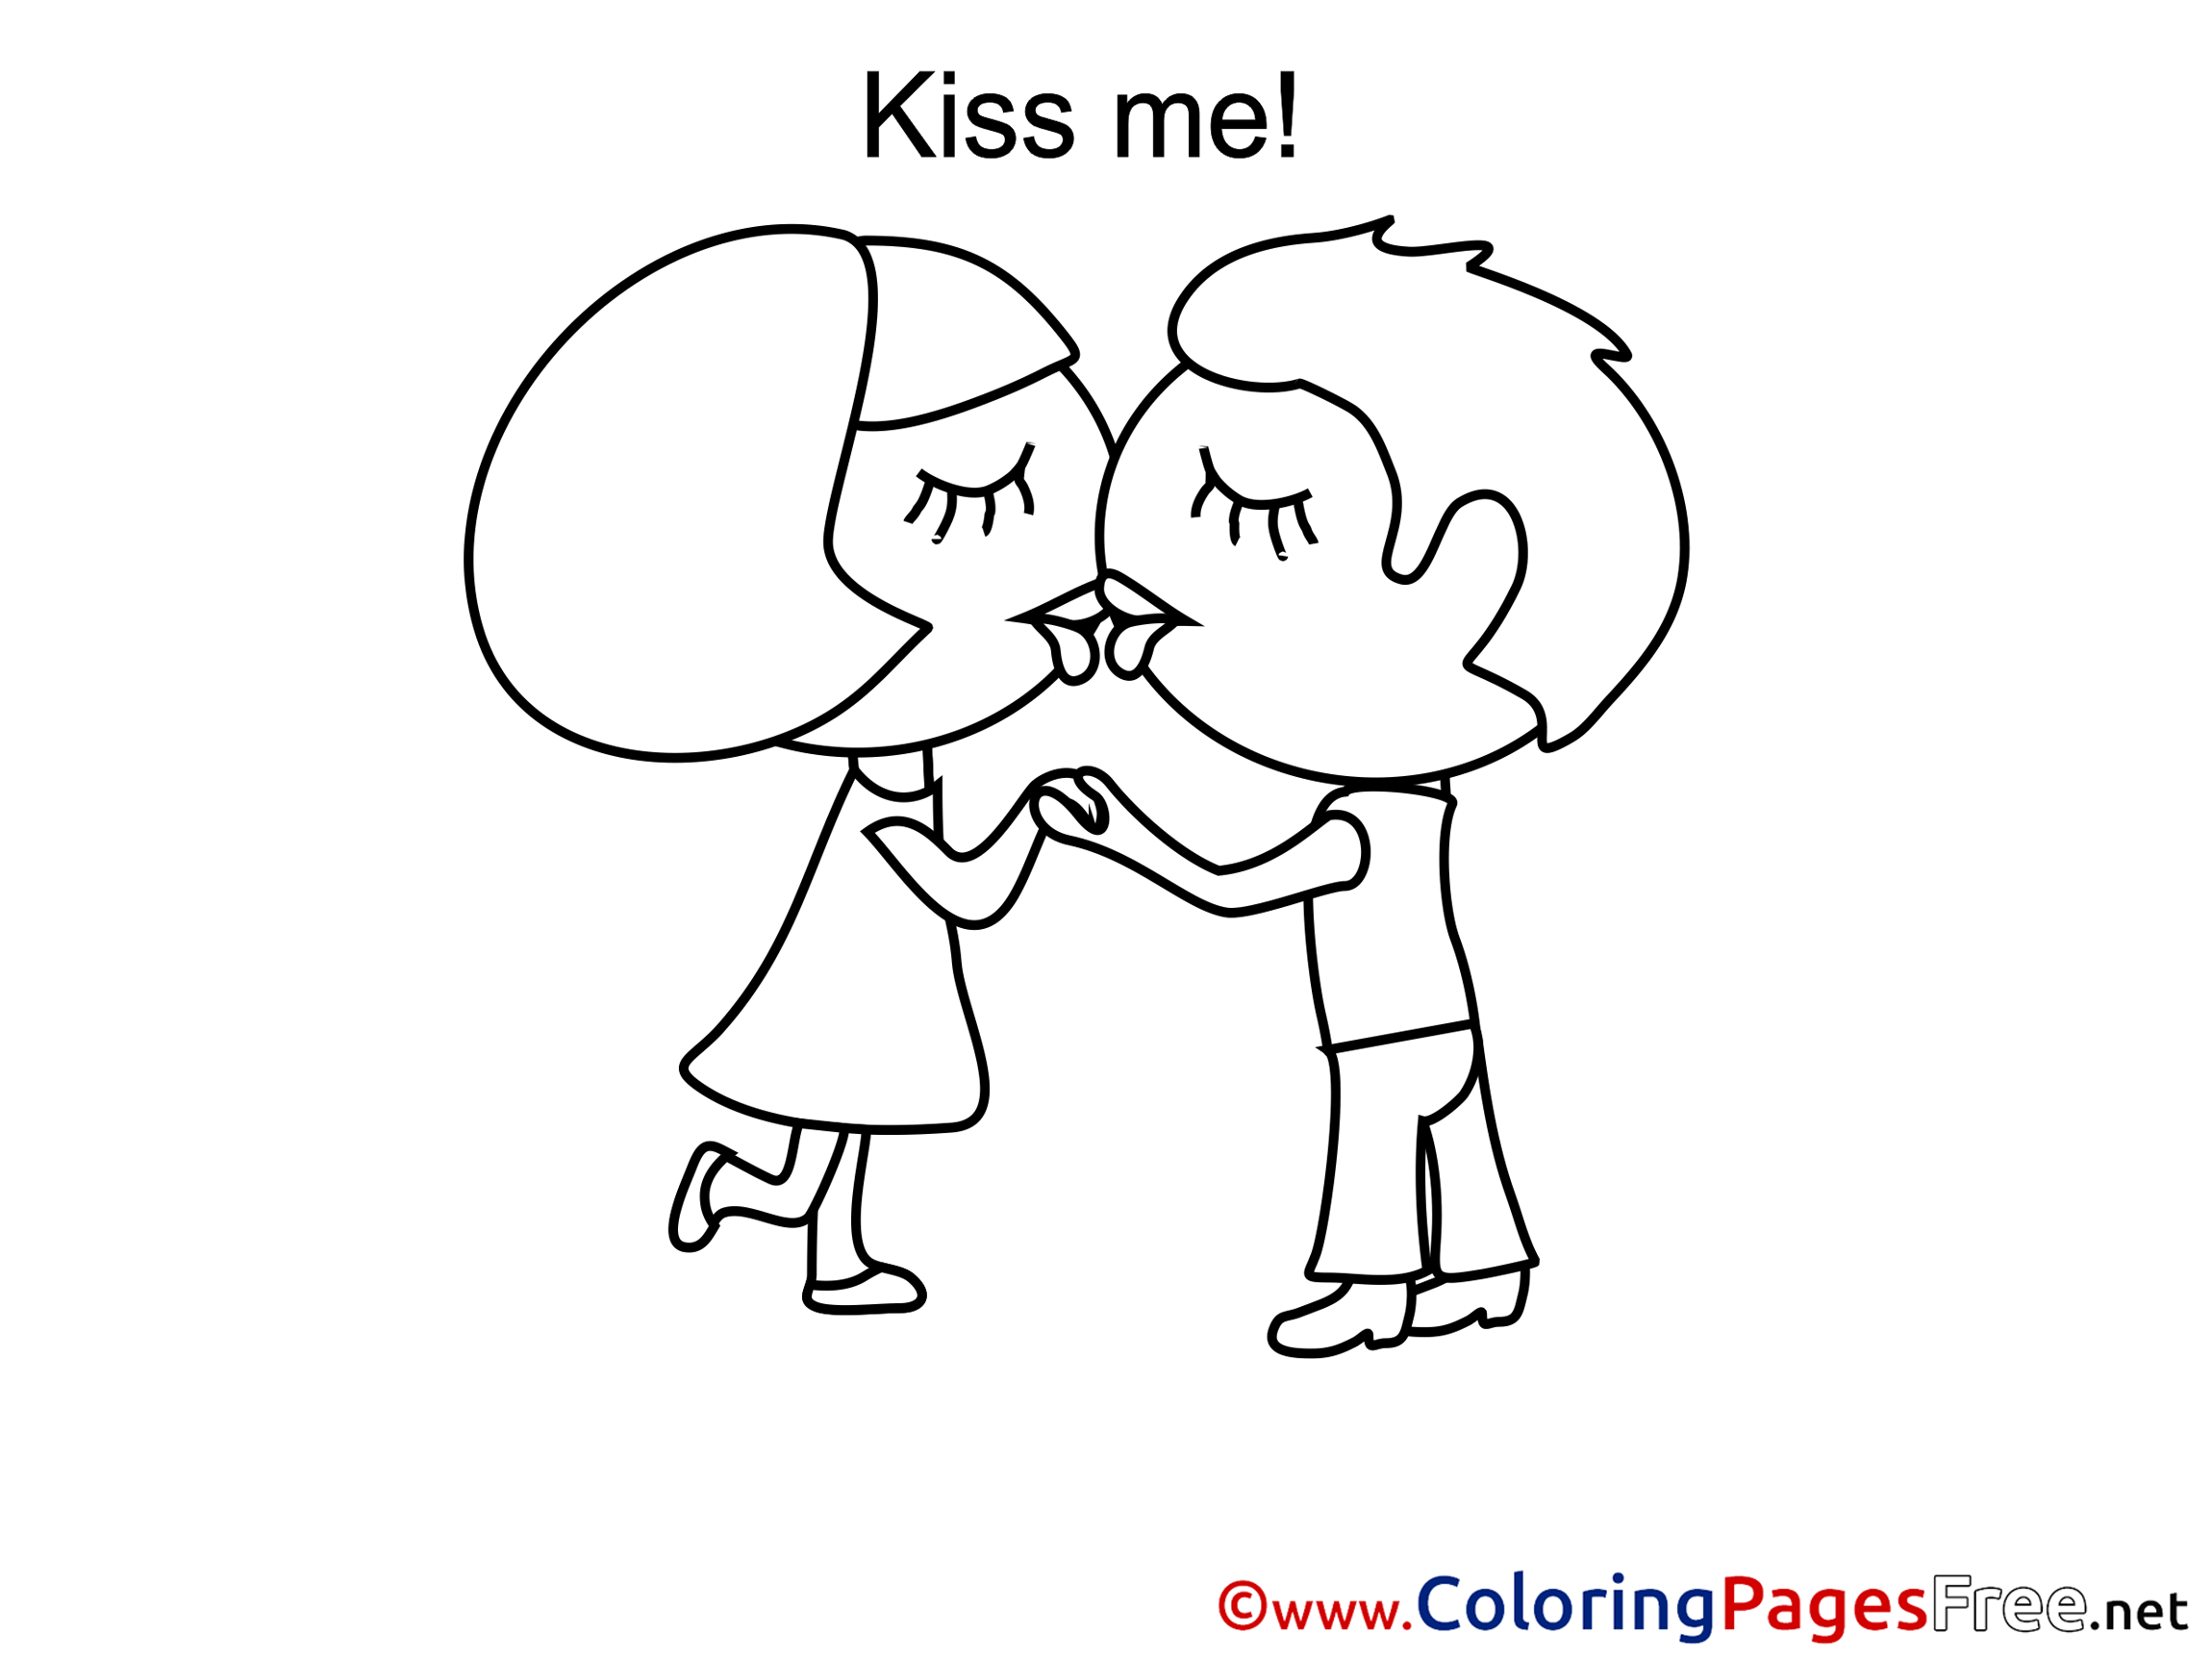 Kids kissing coloring pages